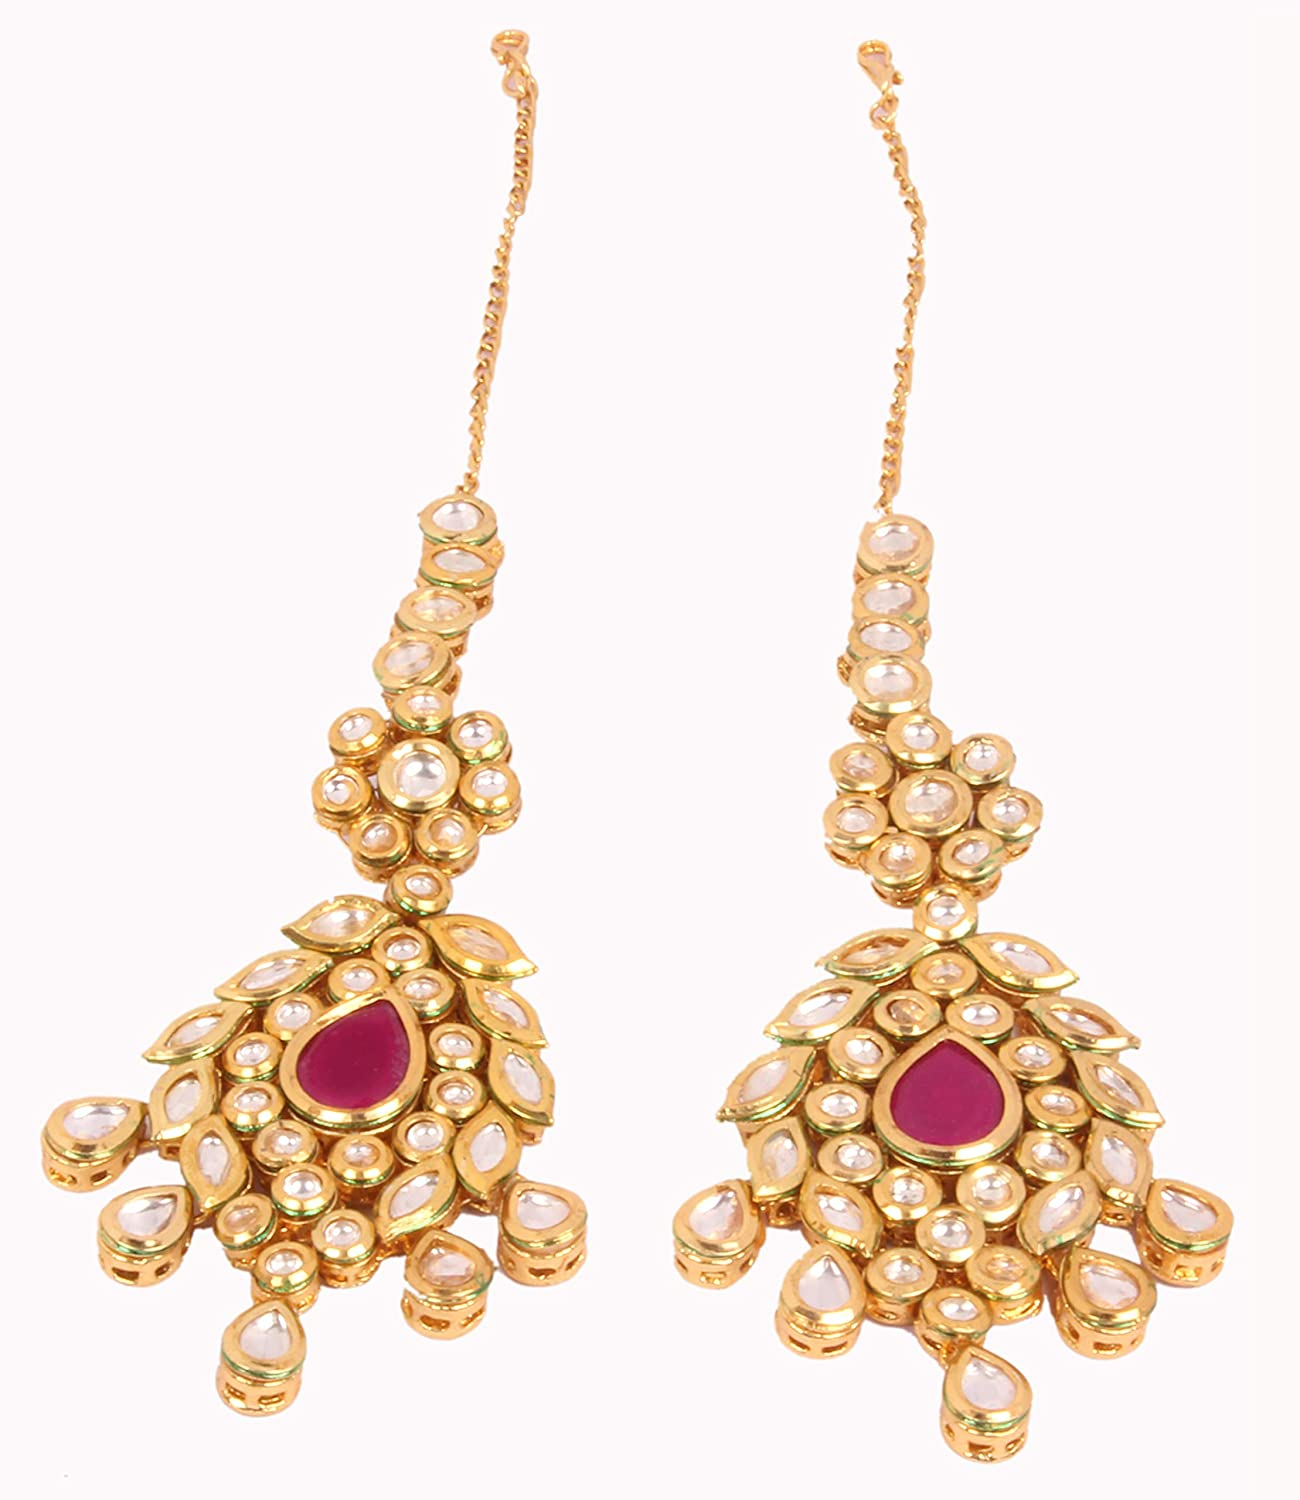 Amazing Indian Style Golden Plated Ruby Stone Polki Necklace Earrings Bridal Set Traditional Jewelry